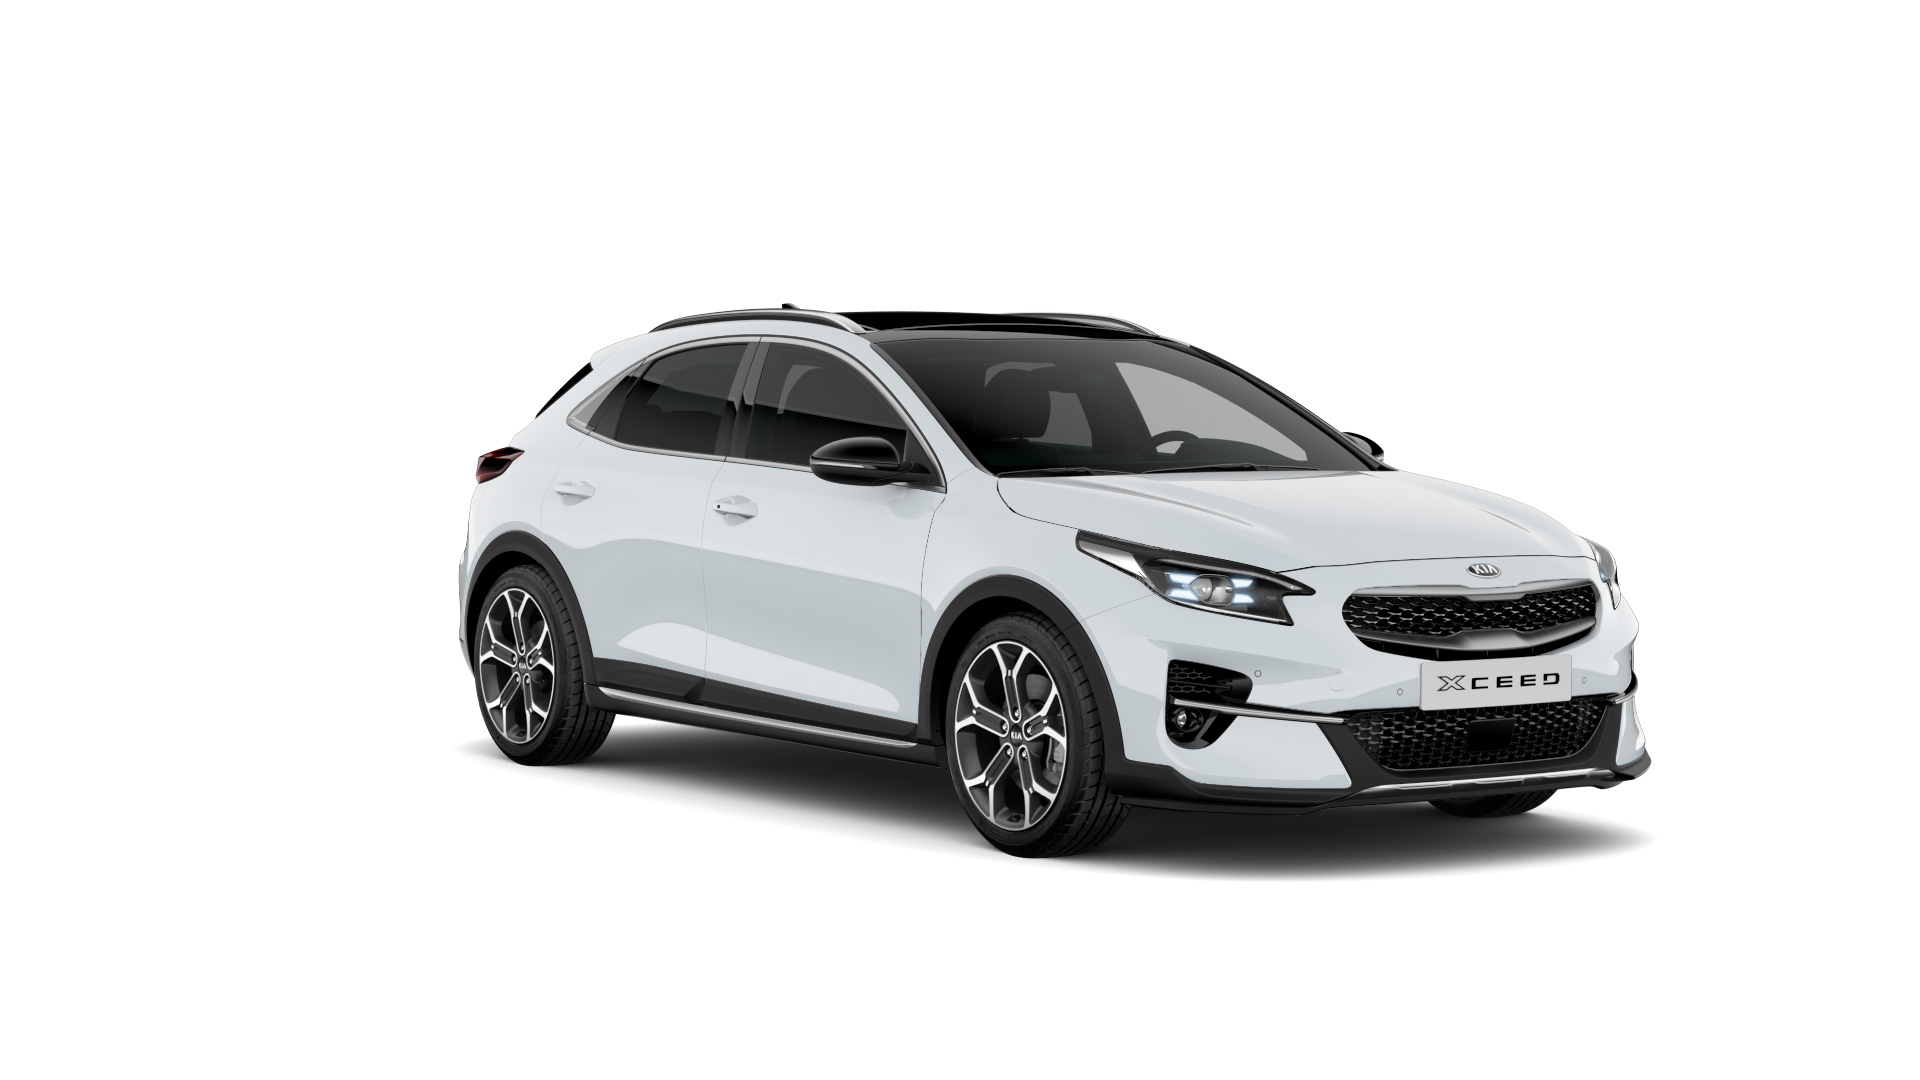 Kia XCeed Autozentrum P&A- Preckel